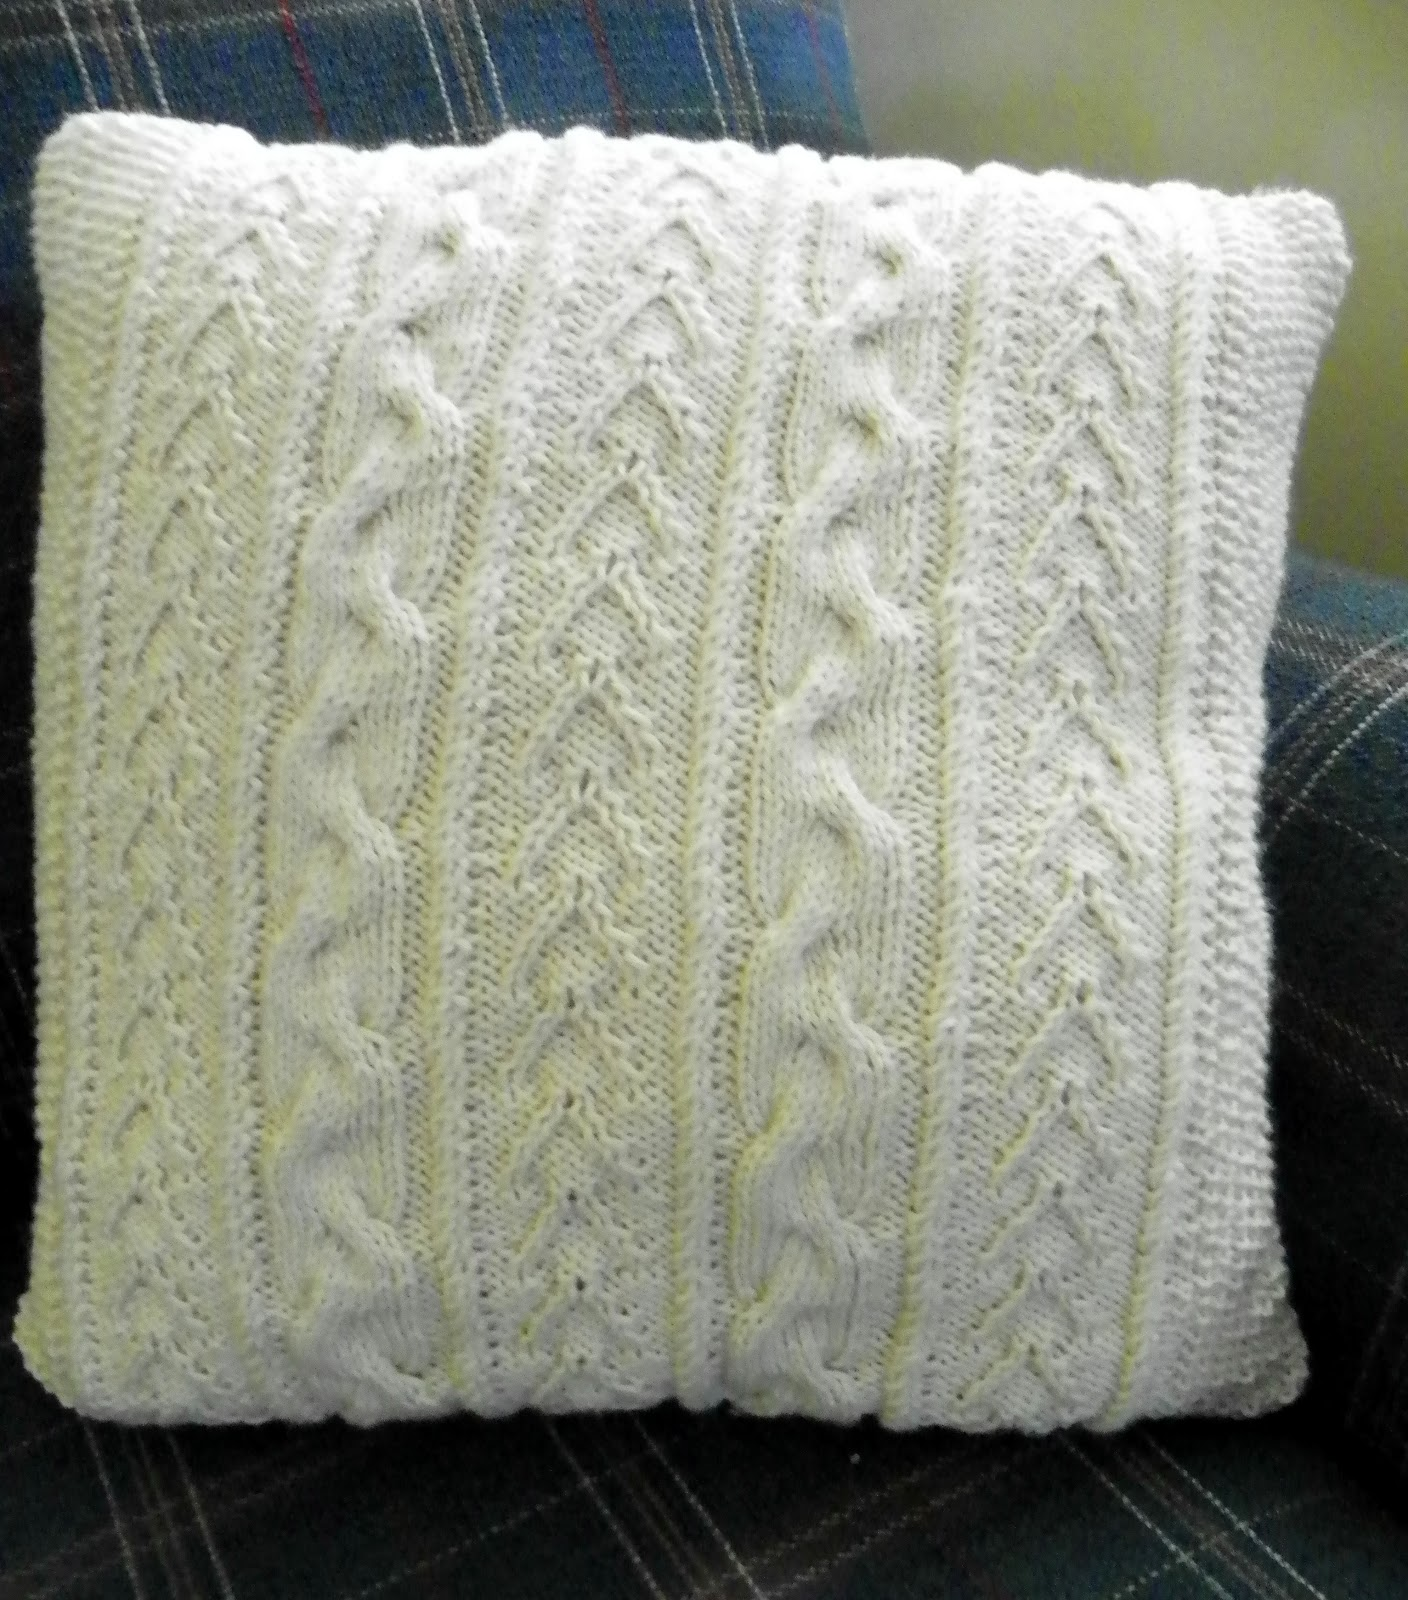 Knitting Pattern For Large Cushion : Lazy Days and Sundays: Cabled cushion